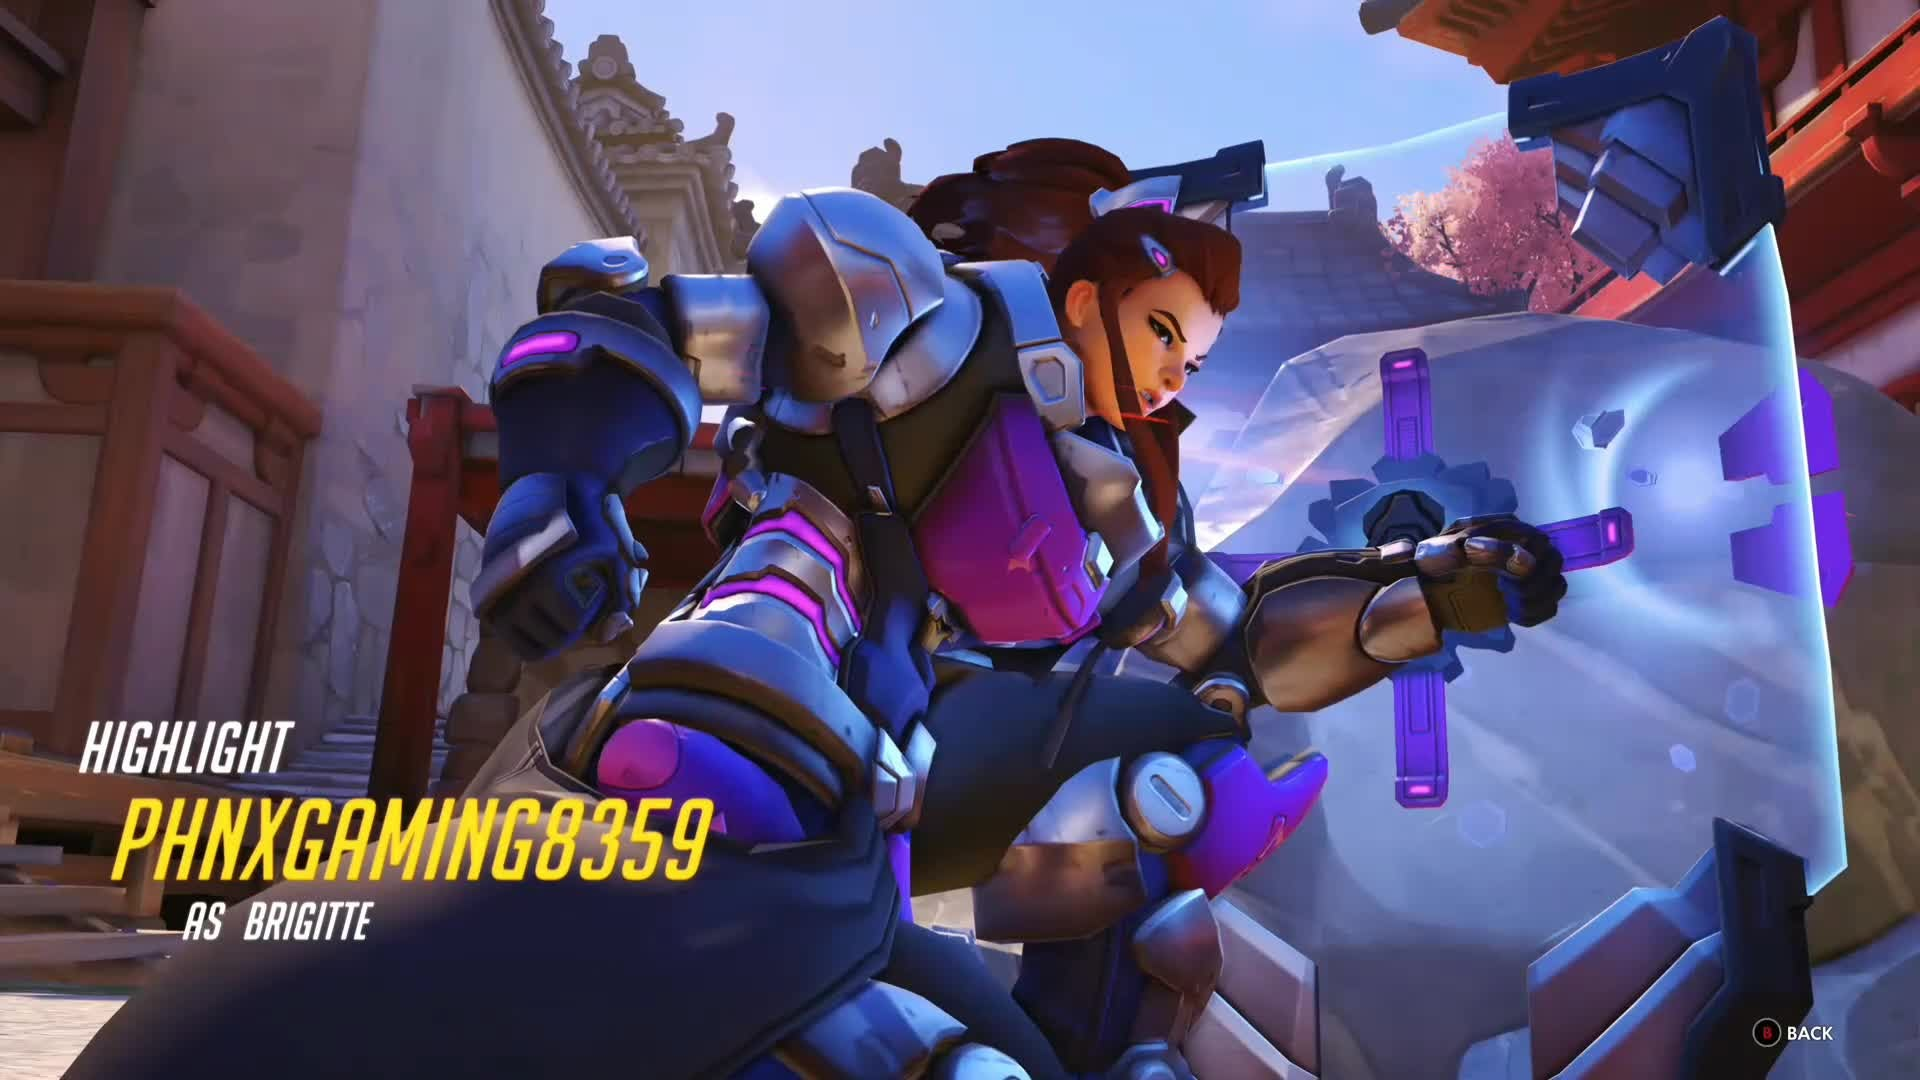 Overwatch: Promotions - BAHAHA LUCIO THOUGHT! video cover image 1